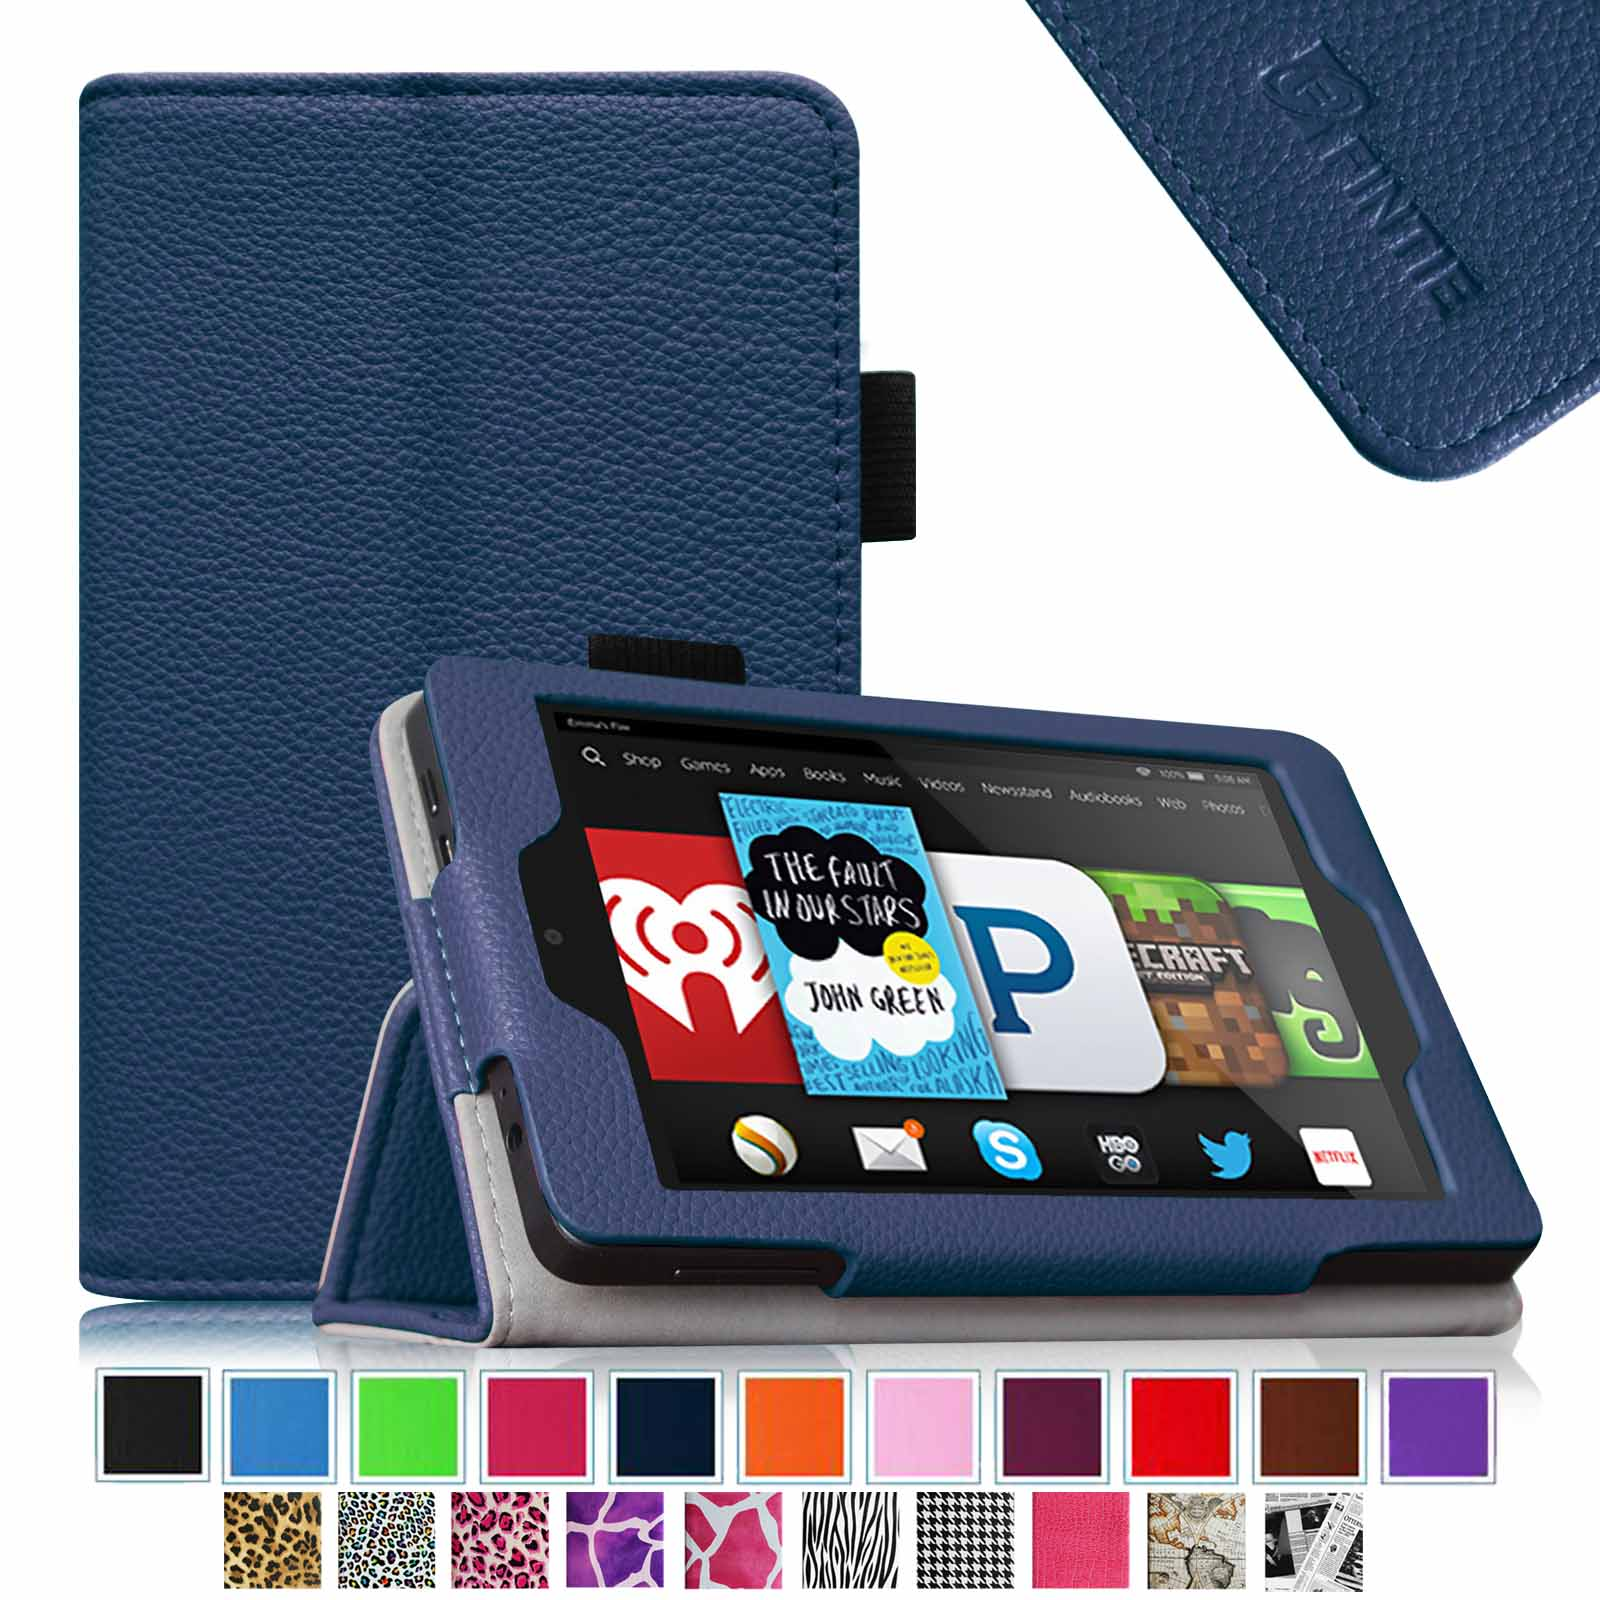 Fintie Kindle Fire HD 6 Tablet (2014 Oct Release) Case - Slim Fit Leather Stand Cover with Sleep/Wake Feature, Navy